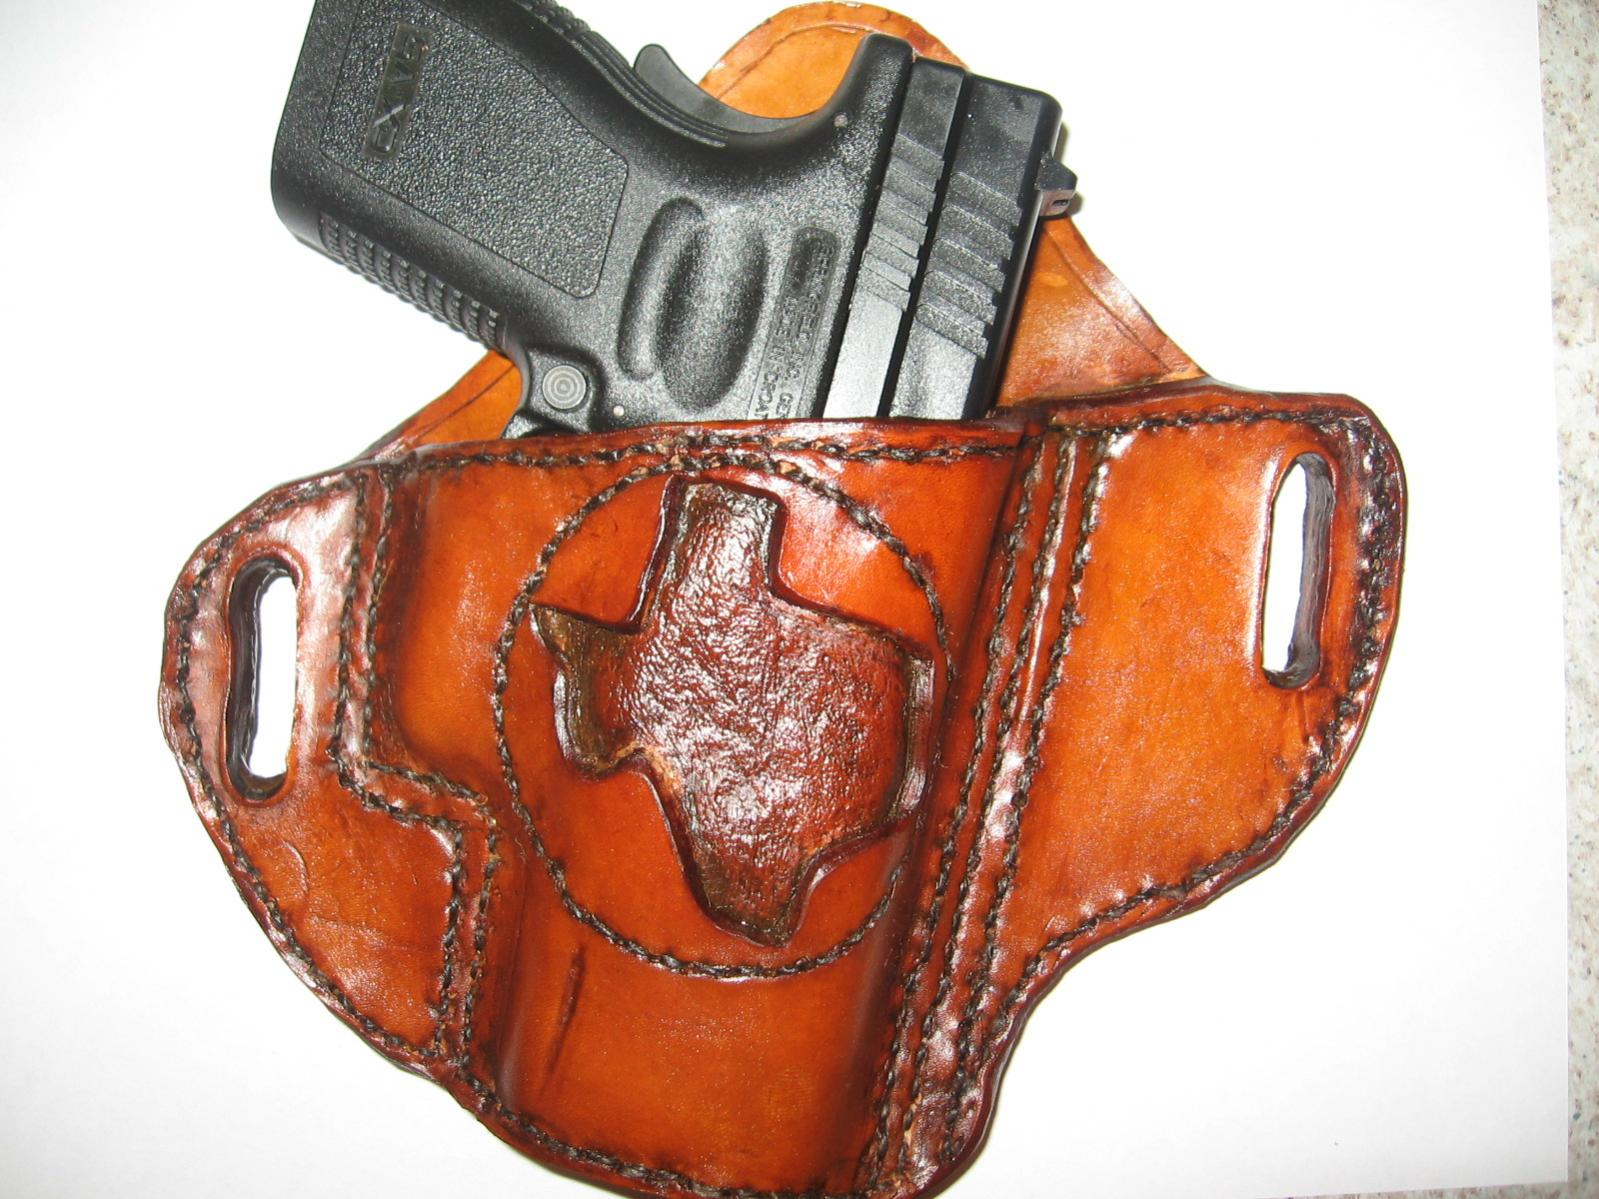 Gentlemanly holster for my XD-img_0006.jpg